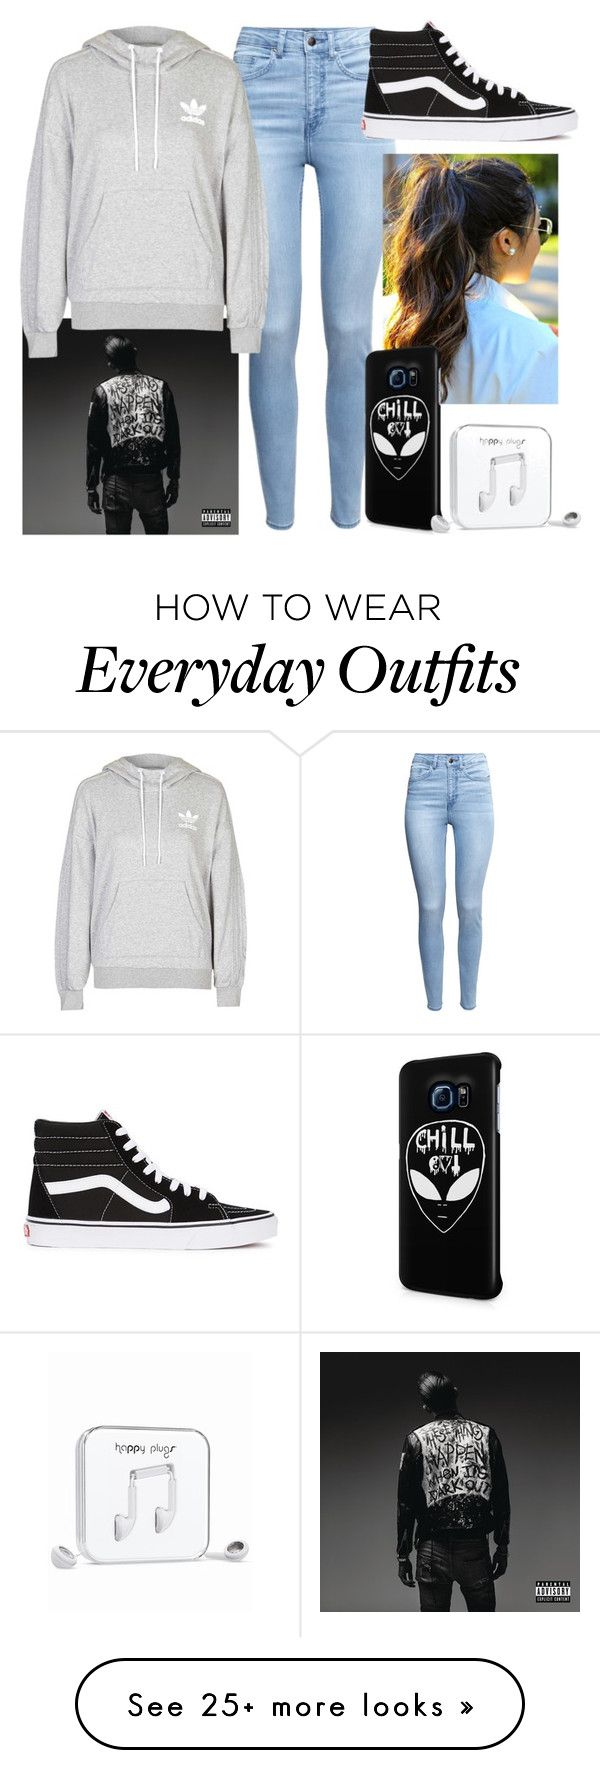 """""""My go to everyday outfit """" by sofiahernandez12 on Polyvore featuring H&M, adidas, Vans, Samsung, Happy Plugs, women's clothing, women's fashion, women, female and woman"""